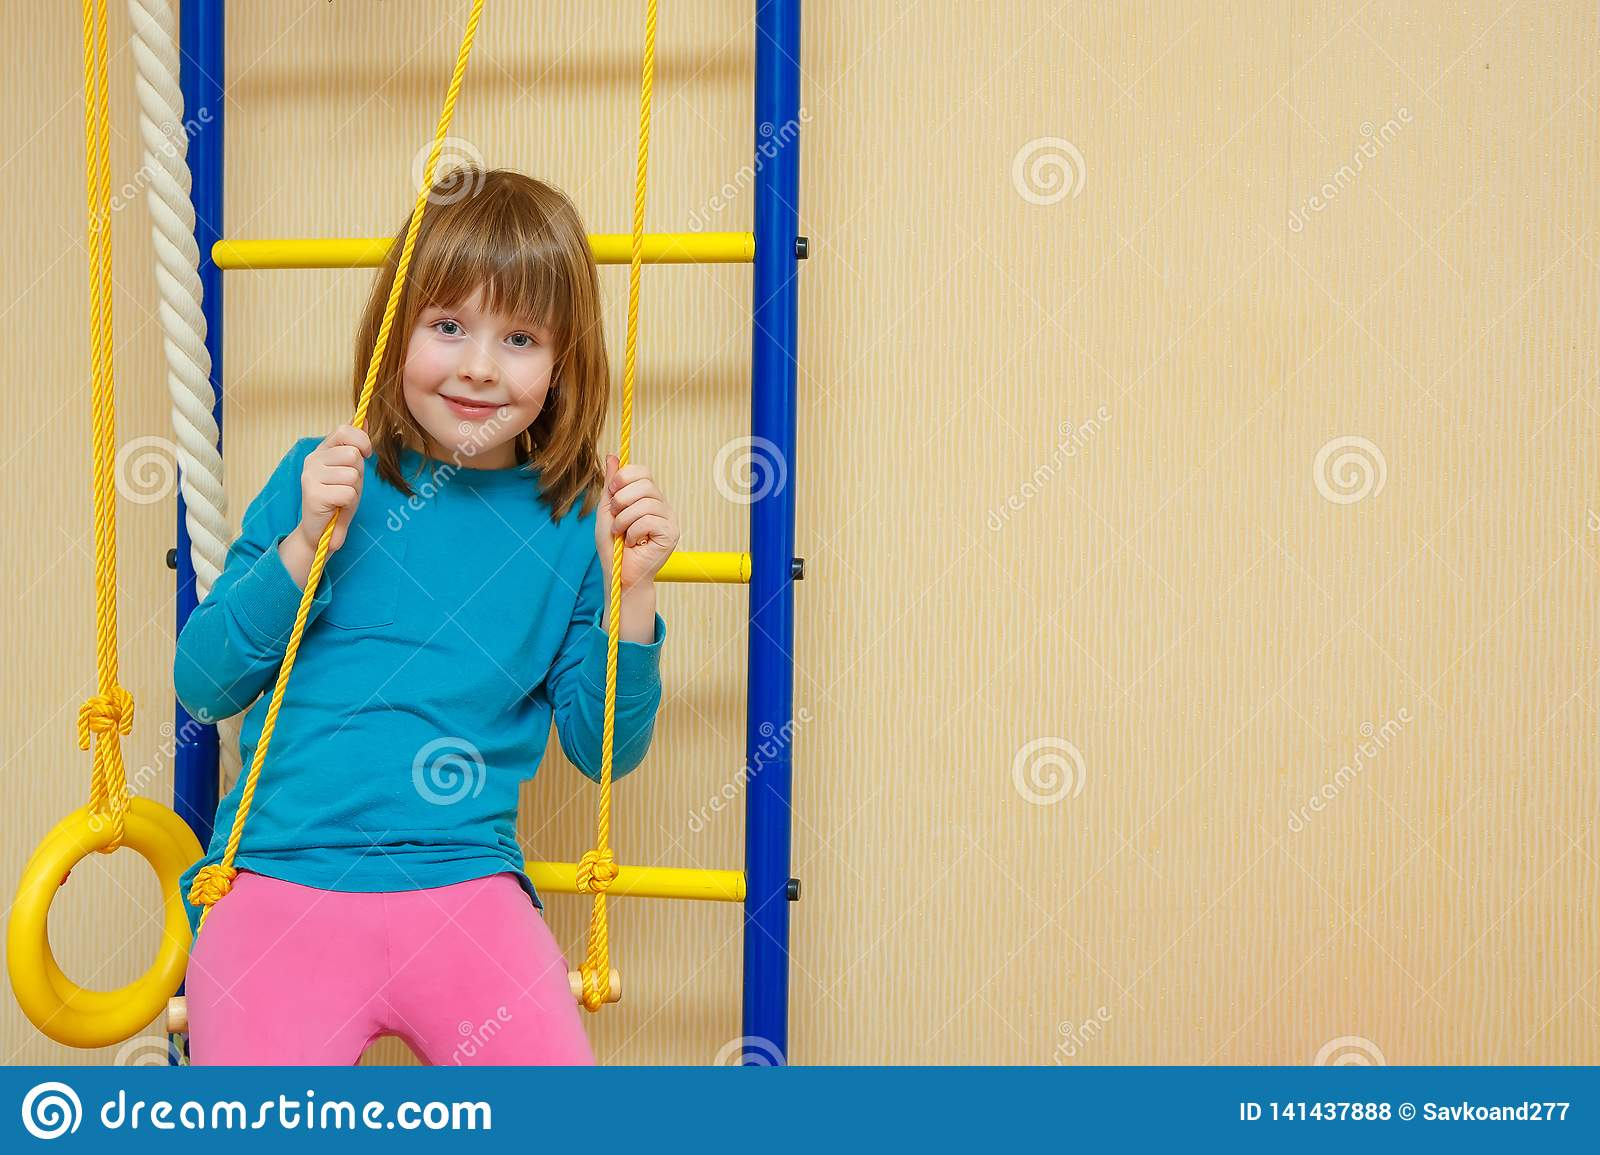 The girl cheerfully sits on a sports ladder